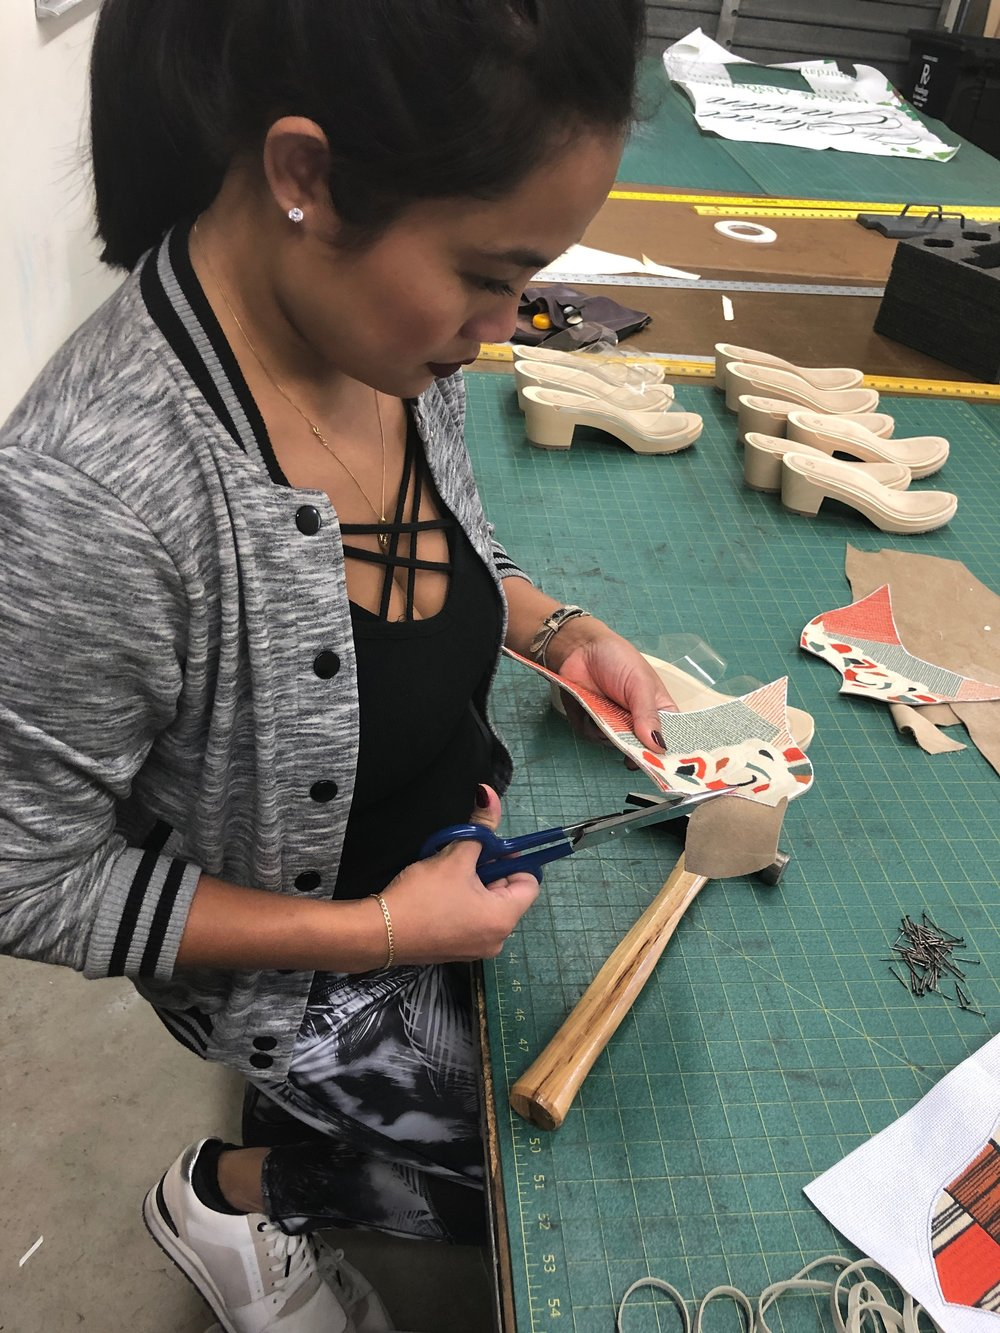 """I LOVE WORKING WITH LEATHER - """"Leather is one of my favorite materials to use in the production process.""""""""The leather touches give your product a beautiful look and feel, lasting quality and a polished edge."""""""